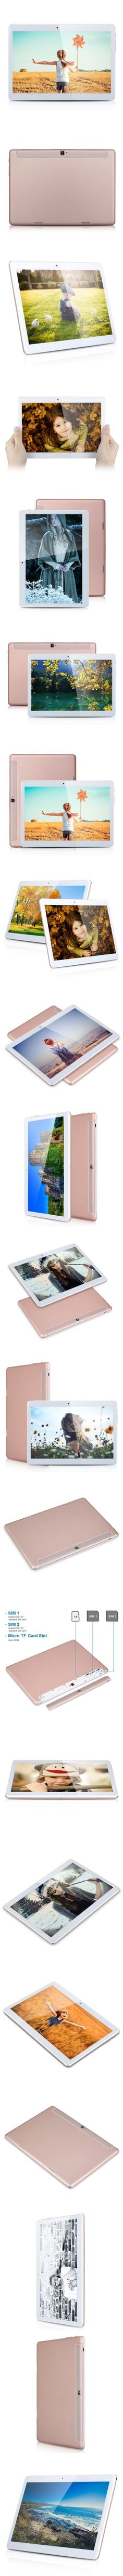 "9.6"" 1280*800 Android 4.4 MTK6582 Quad Core 1GB+16GB WiFi 3G Dual Camera G-sensor GPS OTG FM Tablet PC"